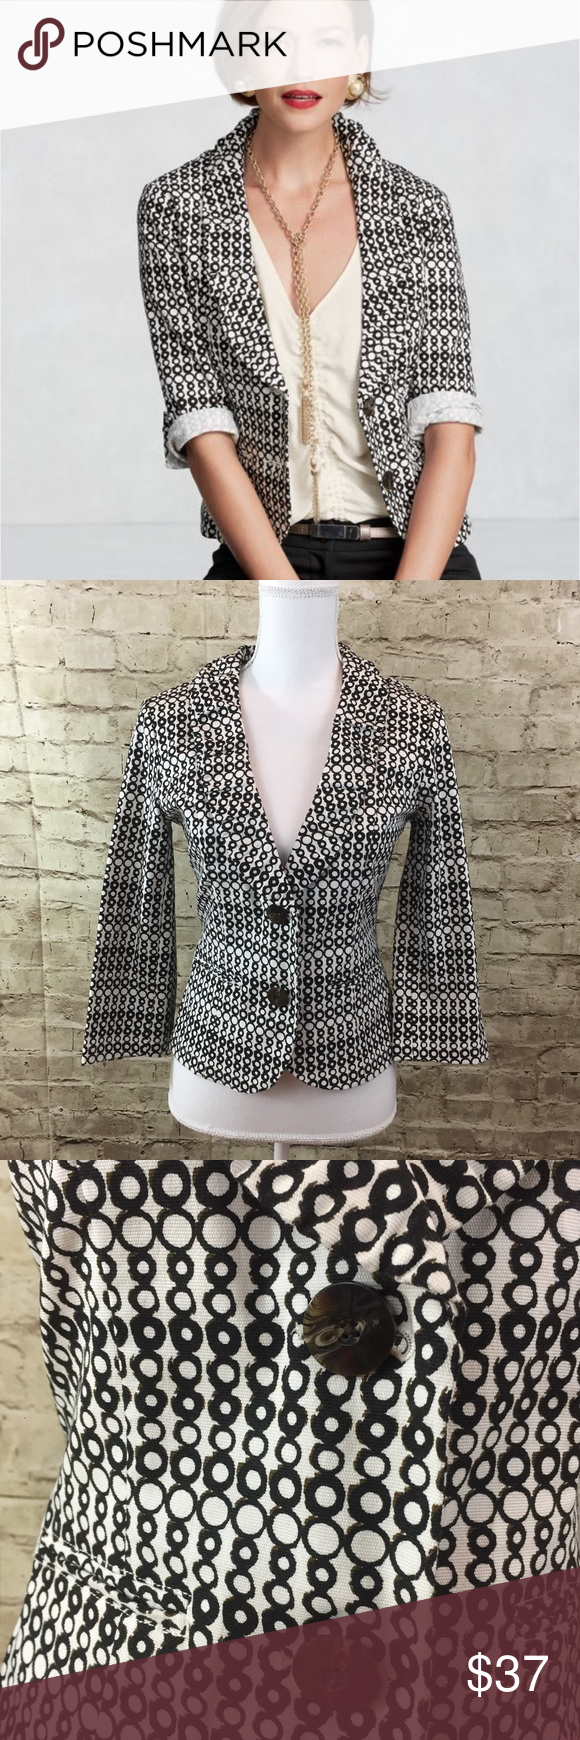 """CAbi De Jour Jacket Blazer Spring collection 2013 • Super cute black and white polka dot jacket with ruffle neckline can be dress up or down, very versatile • excellent preowned condition • cotton spandex • approximate measurements bust 17.5"""", length 21"""", sleeve length 12.25"""" CAbi Jackets & Coats Blazers"""